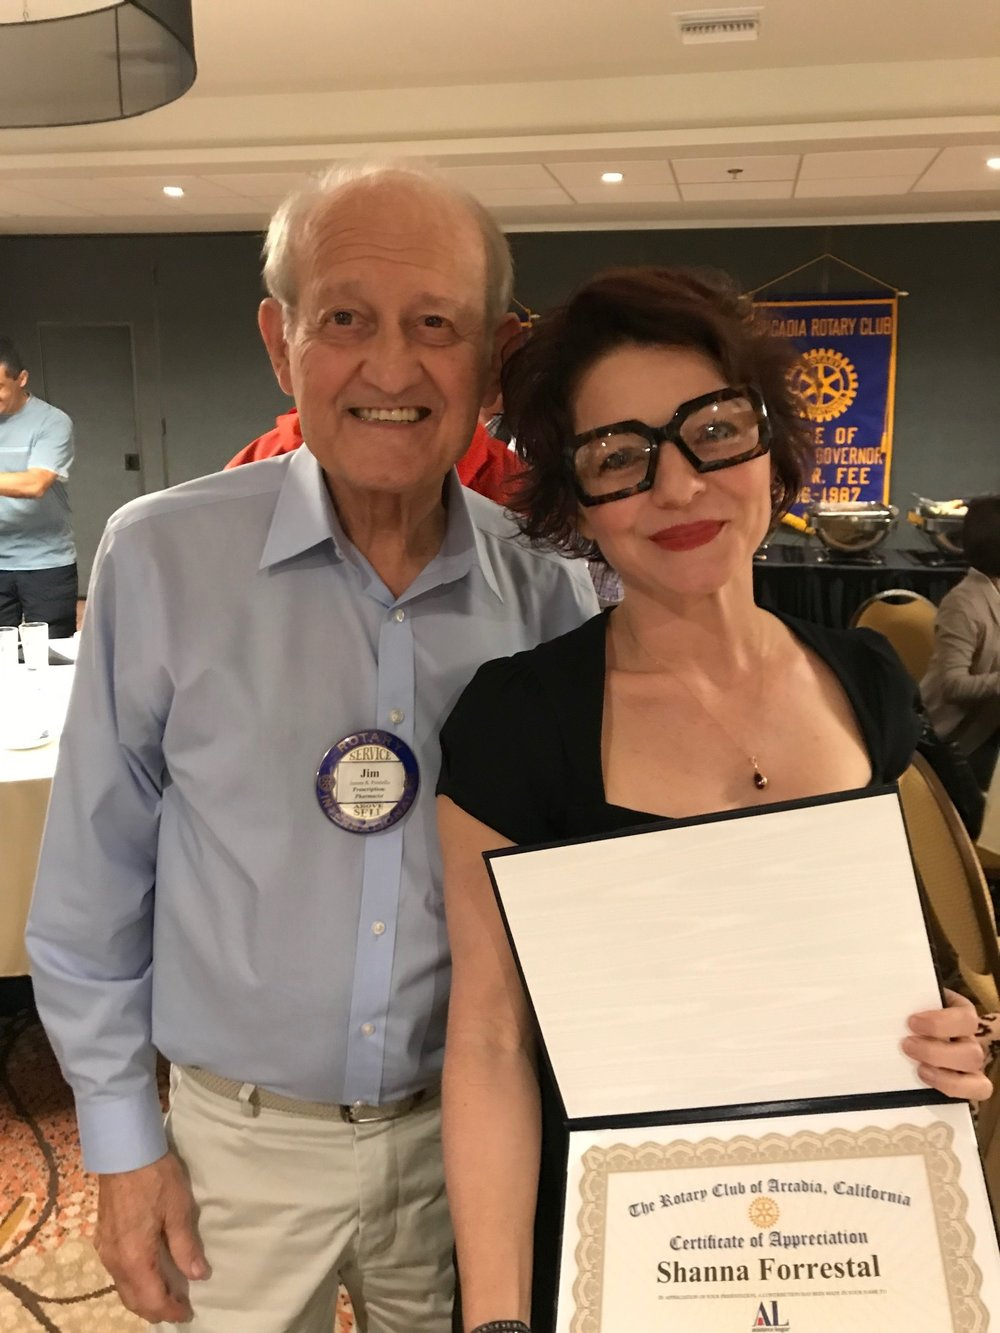 Shanna Forrestall - Forrestall Consulting - Rotary Club of Arcadia